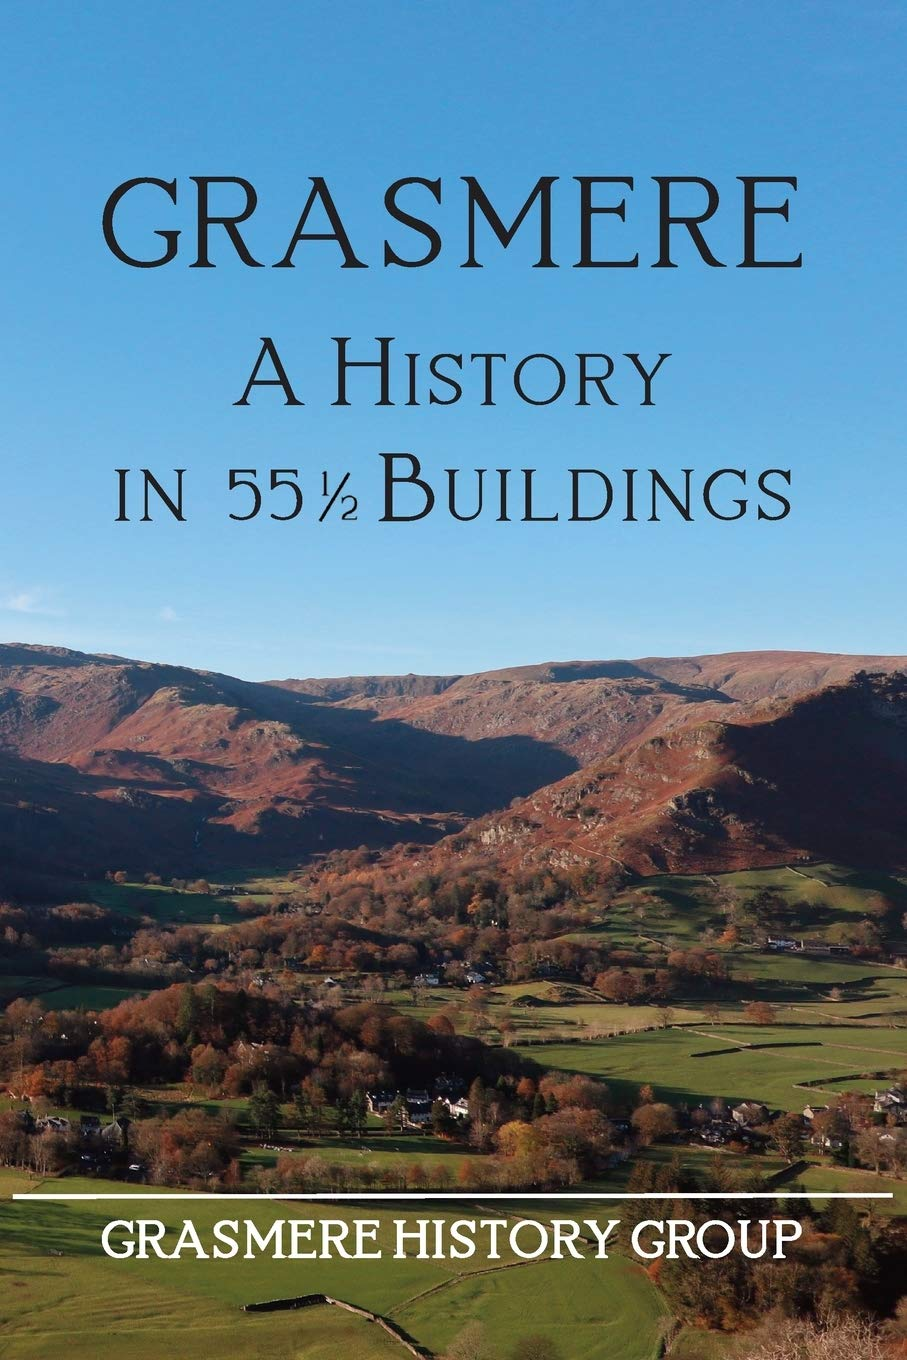 Grasmere: A History in 55 1/2 Buildings